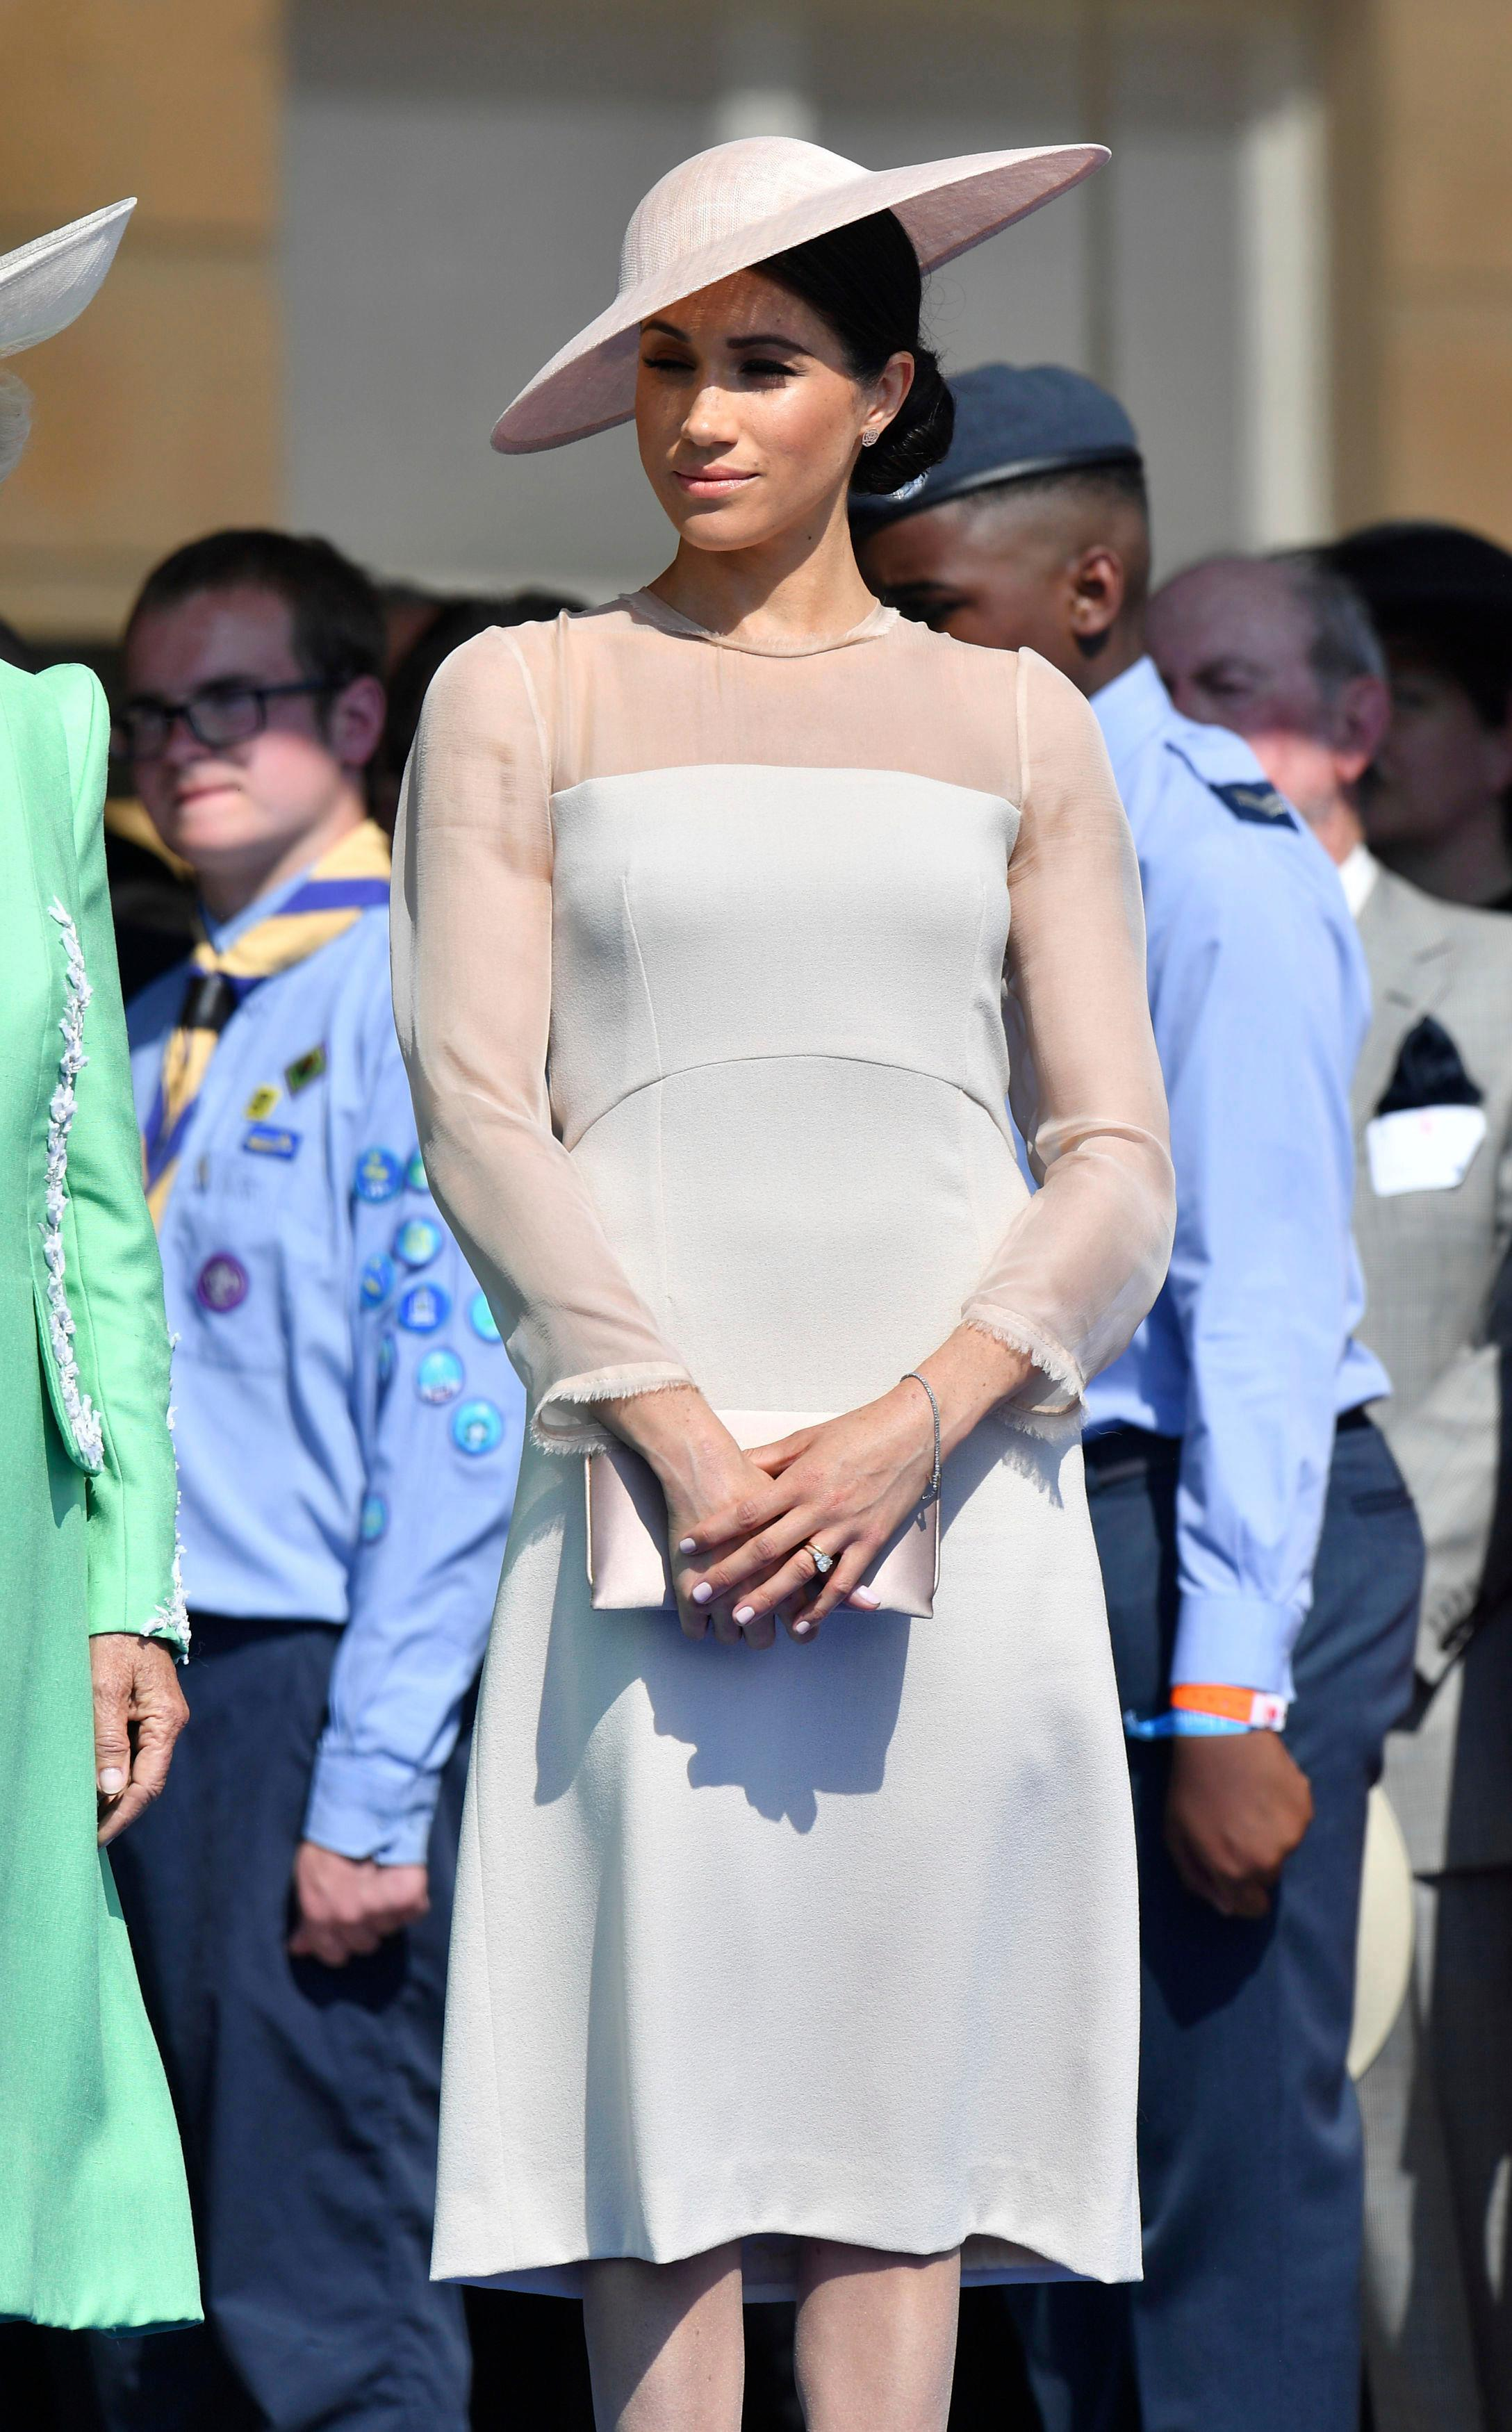 Meghan, the Duchess of Sussex attends a garden party at Buckingham Palace in London, Tuesday May 22, 2018, her first royal engagement since her wedding to Prince Harry on Saturday. The event is part of the celebrations to mark the 70th birthday of Prince Charles.  (Dominic Lipinski/Pool Photo via AP)